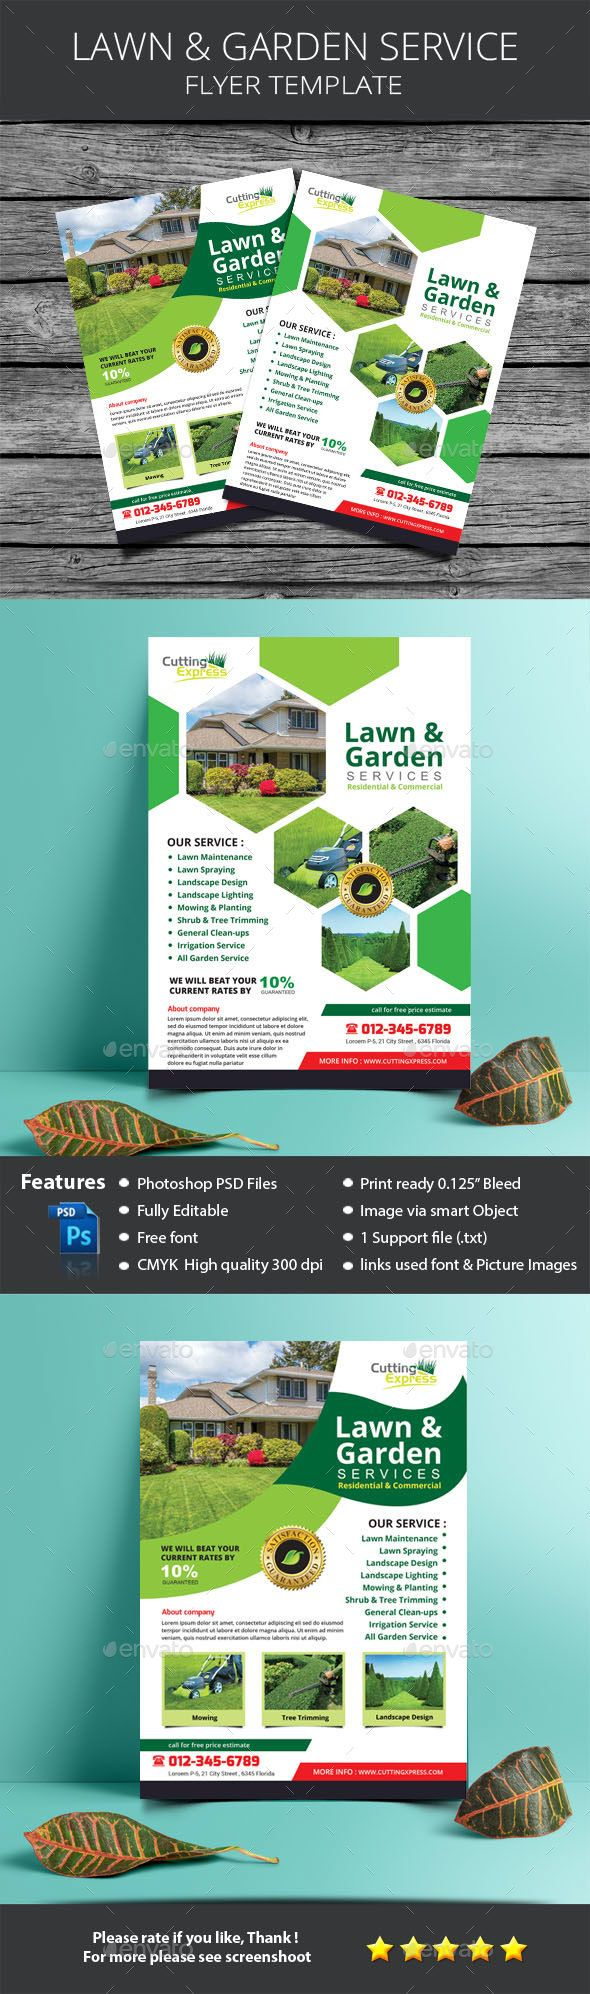 Lawn Garden Services Print Templates Flyers Commerce For Better